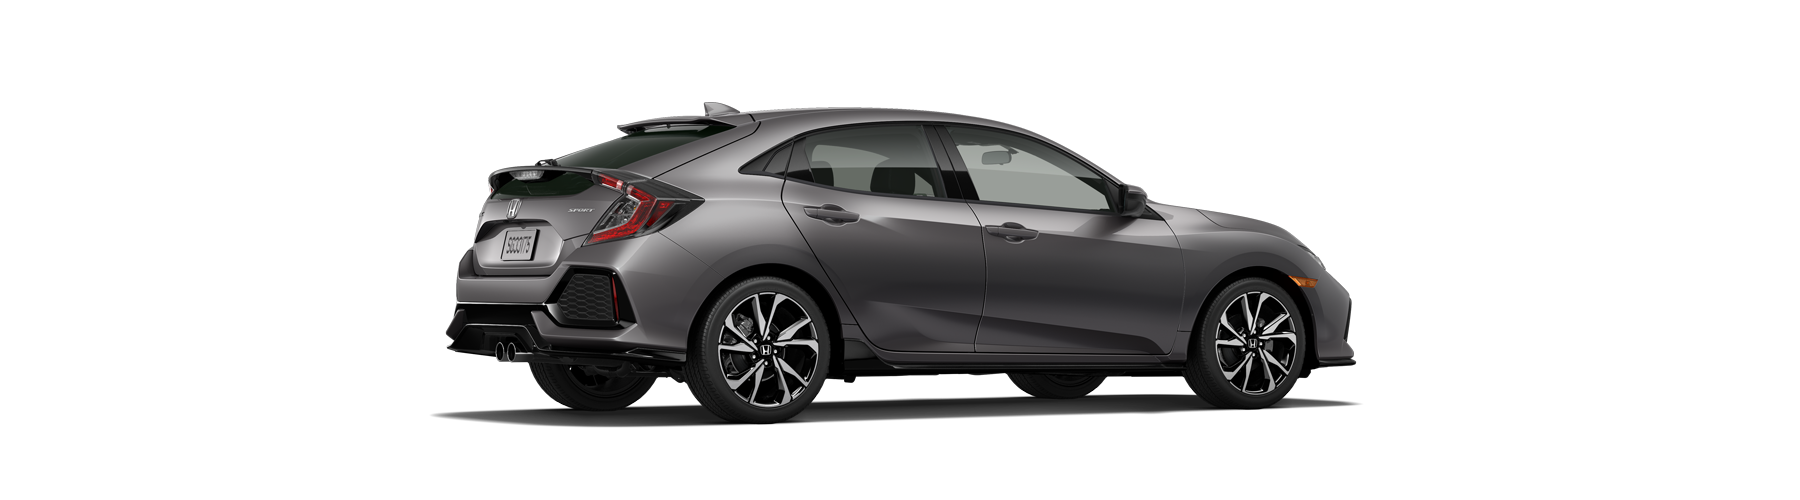 2017 Honda Civic Hatchback Rear Angle